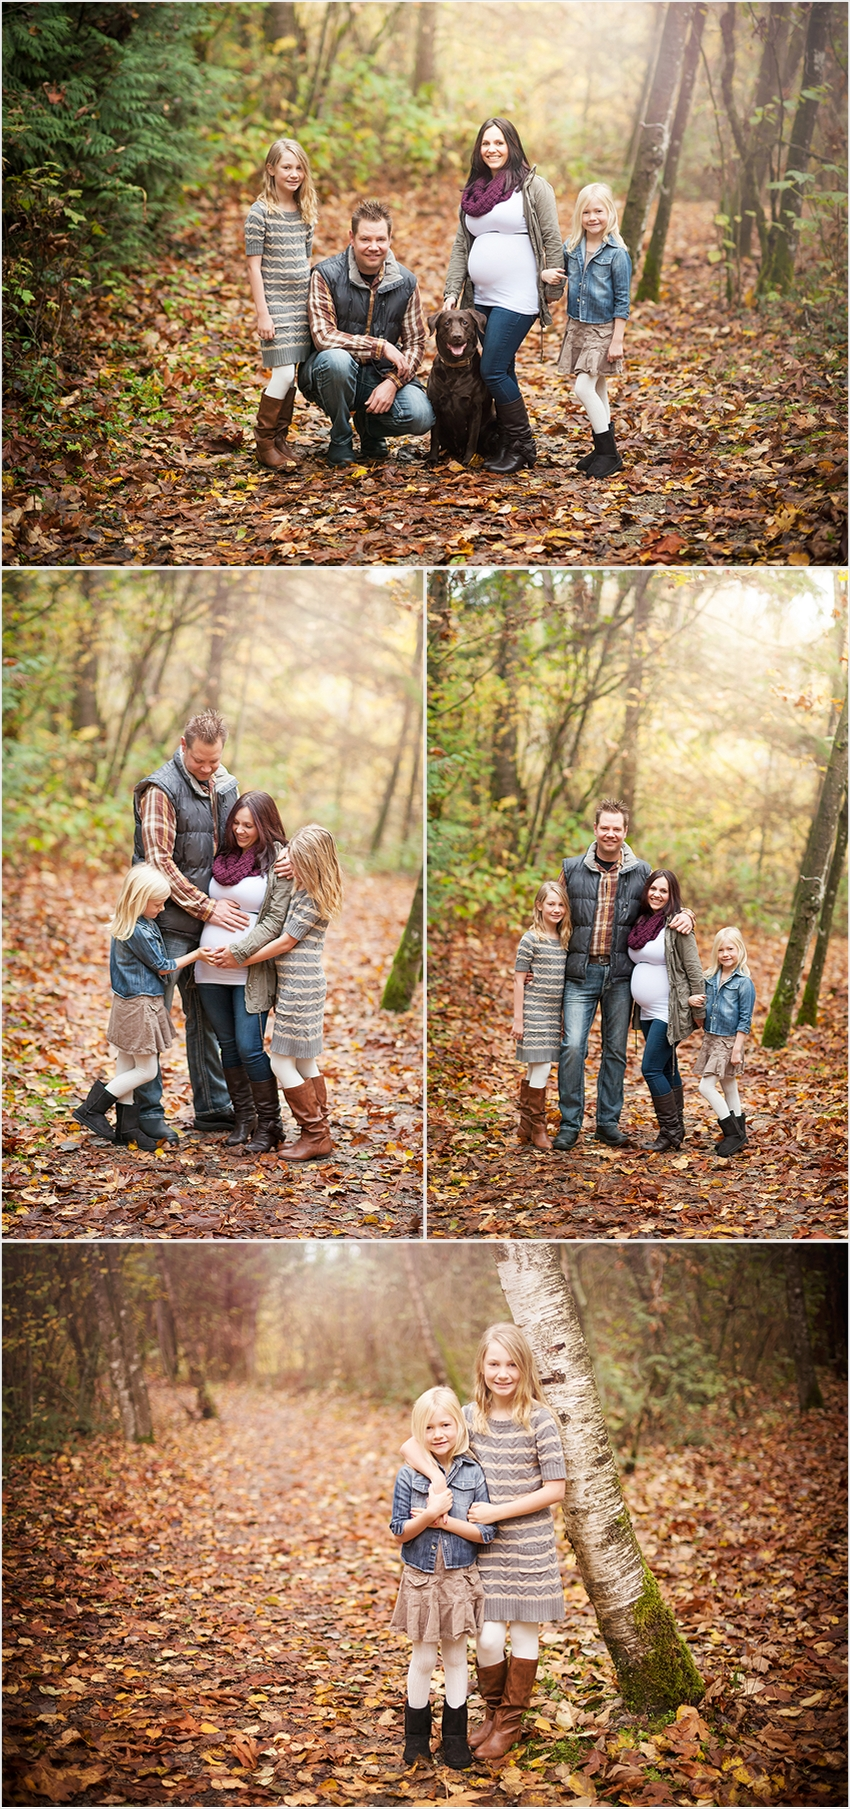 abbotsford-family-maternity-photographer-001-side-1